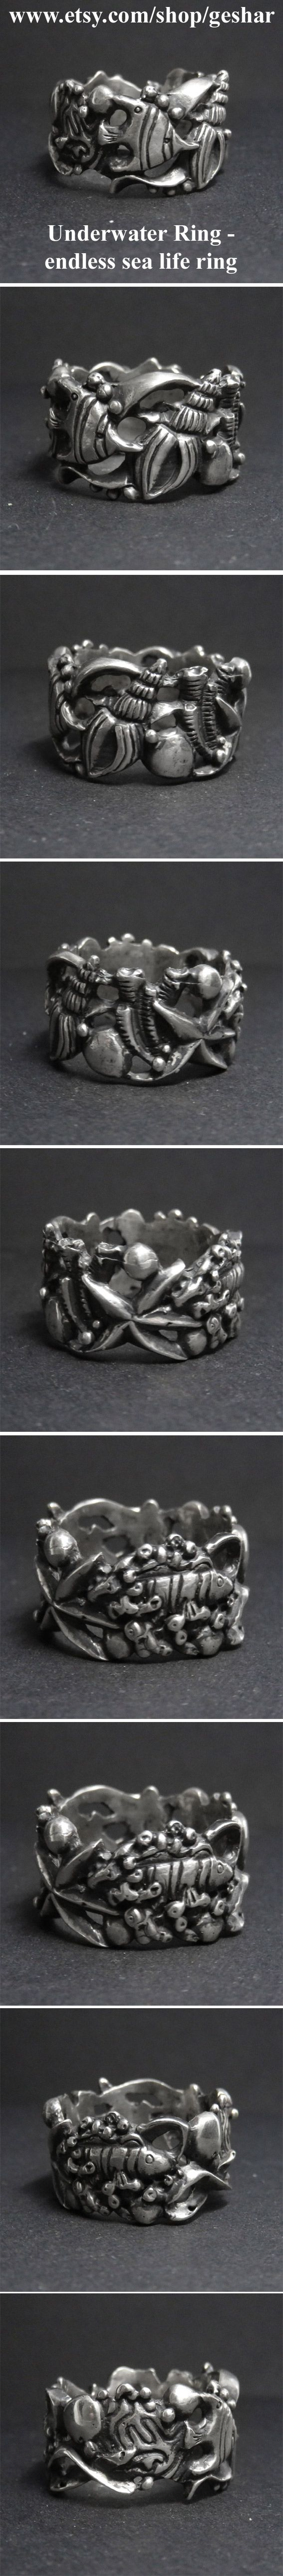 This hand-carved silver ring displays life of the coral reef - fish, conch shells, corals and starfish. Now for sale at www.geshar.etsy.com  #art #shopping #style #silver #silverjewelry #sea #ocean #sealife #fish #coralreef #reef #underwater #handmadewithlove #handmade #handmadejewelry #etsy #etsyseller #etsyshop #etsyfinds #shopetsy